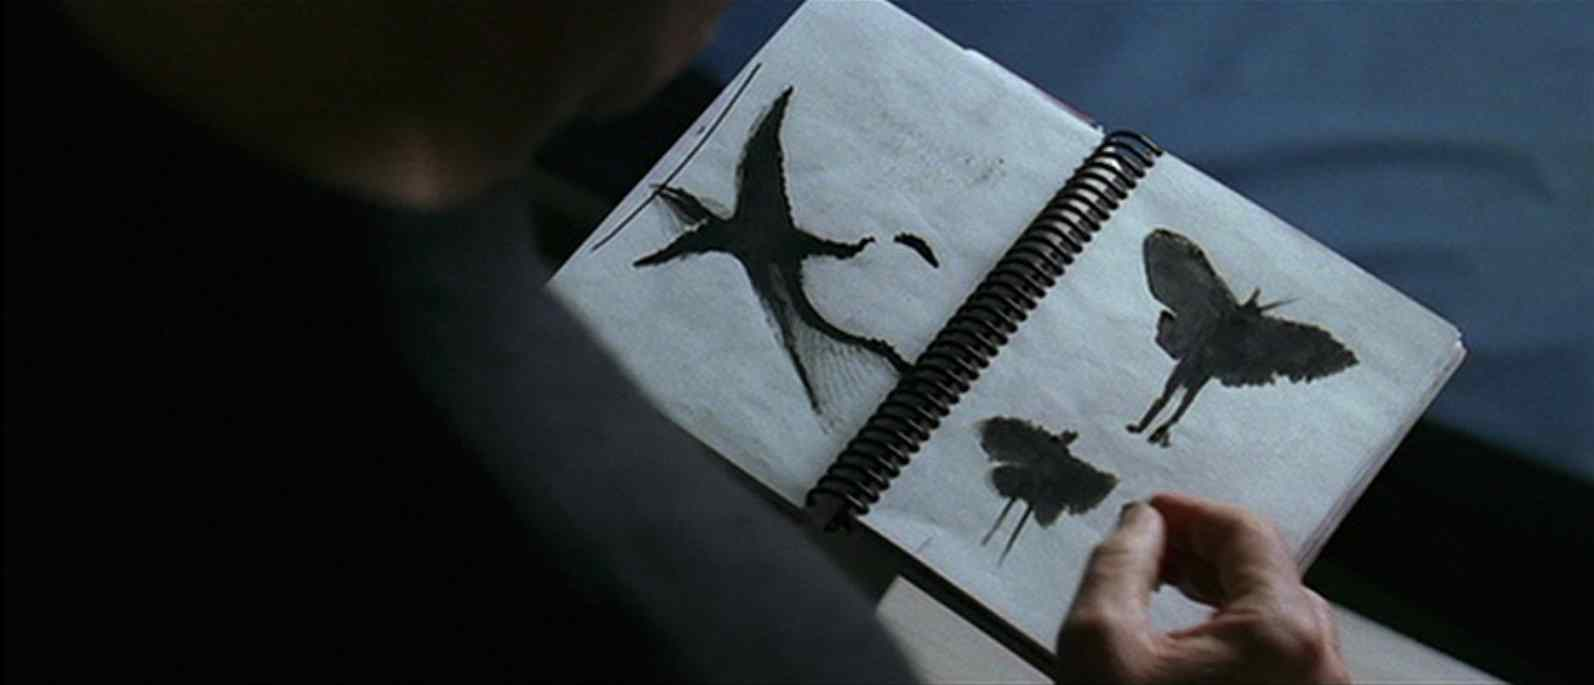 Drawings by what the mothman looks like in the movie starring Richard Gere and Laura Linney.